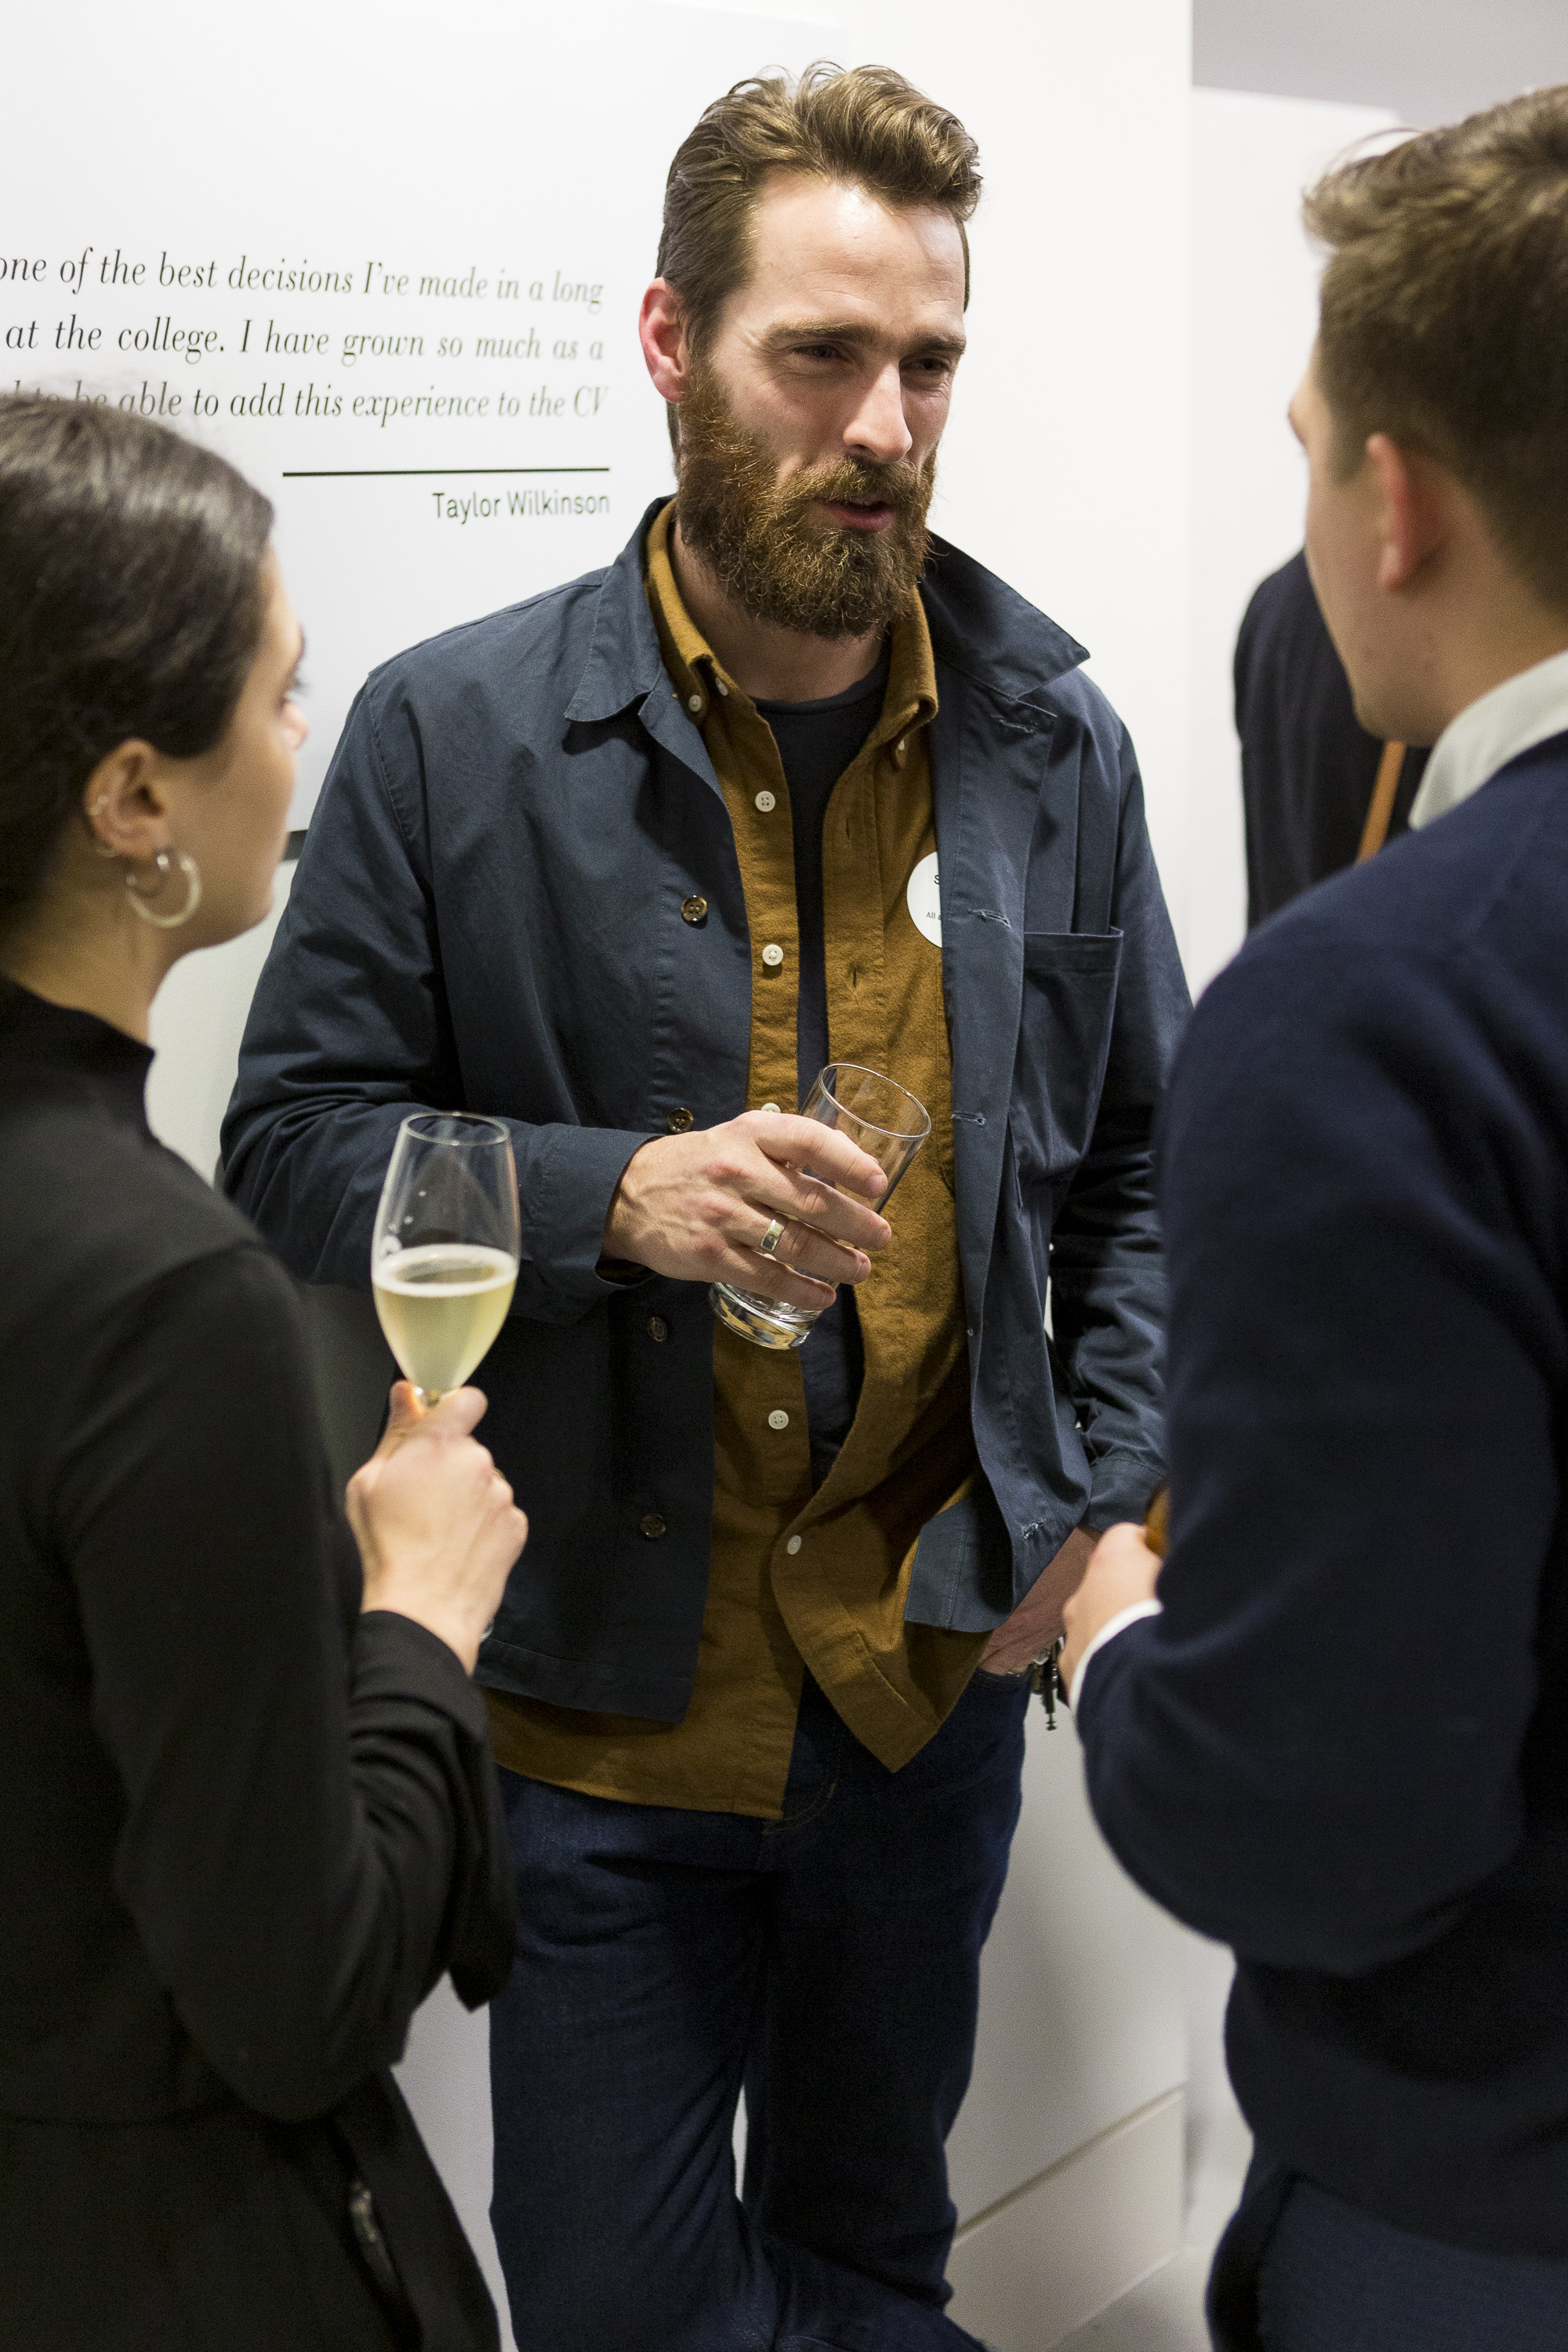 Clippings interior design event in London - Now///Next Spring 2019 with Wallpaper magazine